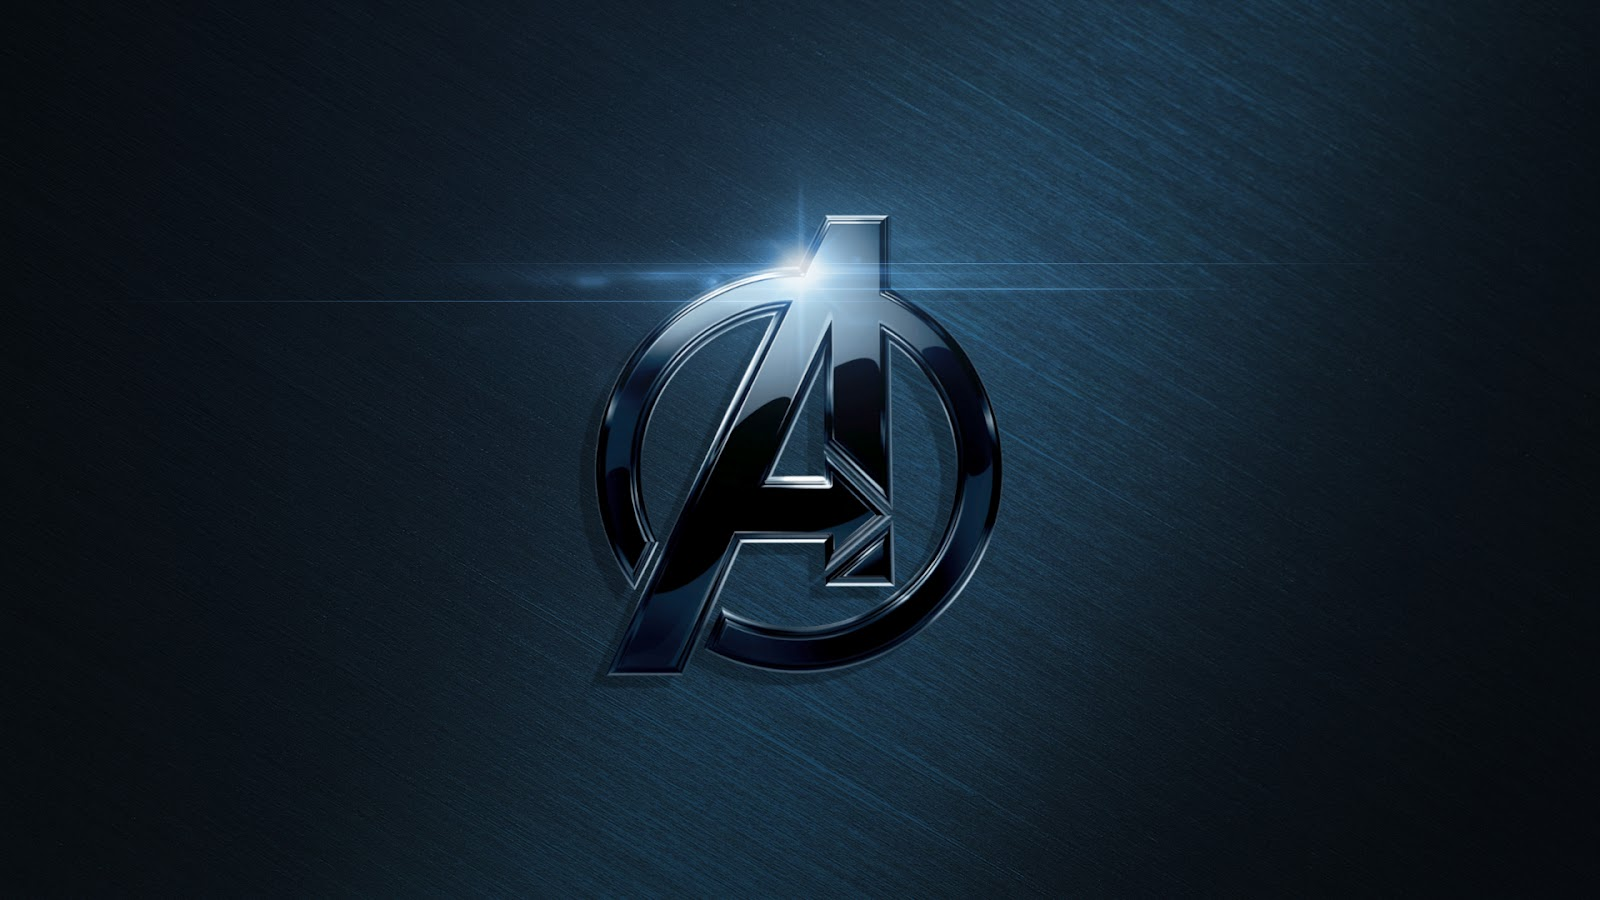 Hd Wallpapers Of S: Wallpapers HD: Los Vengadores (Advengers) HD Wallpapers